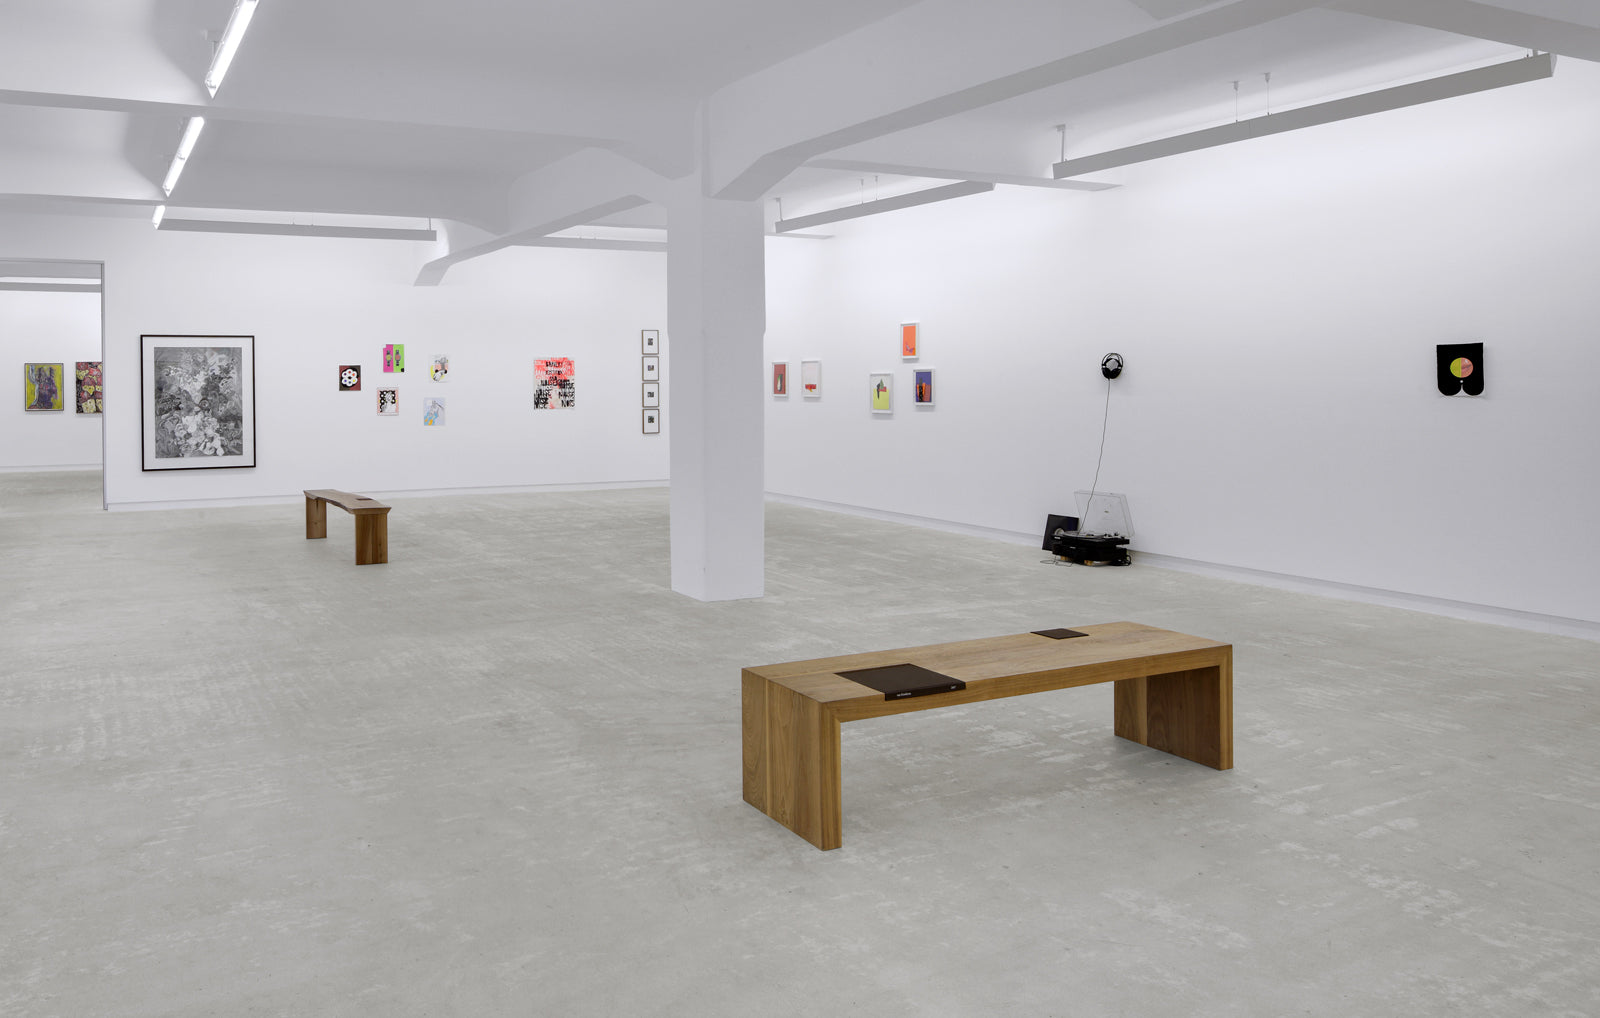 Group Show, Paper Does Not Blush, Installation view, 2012, Galerie Michael Janssen Berlin